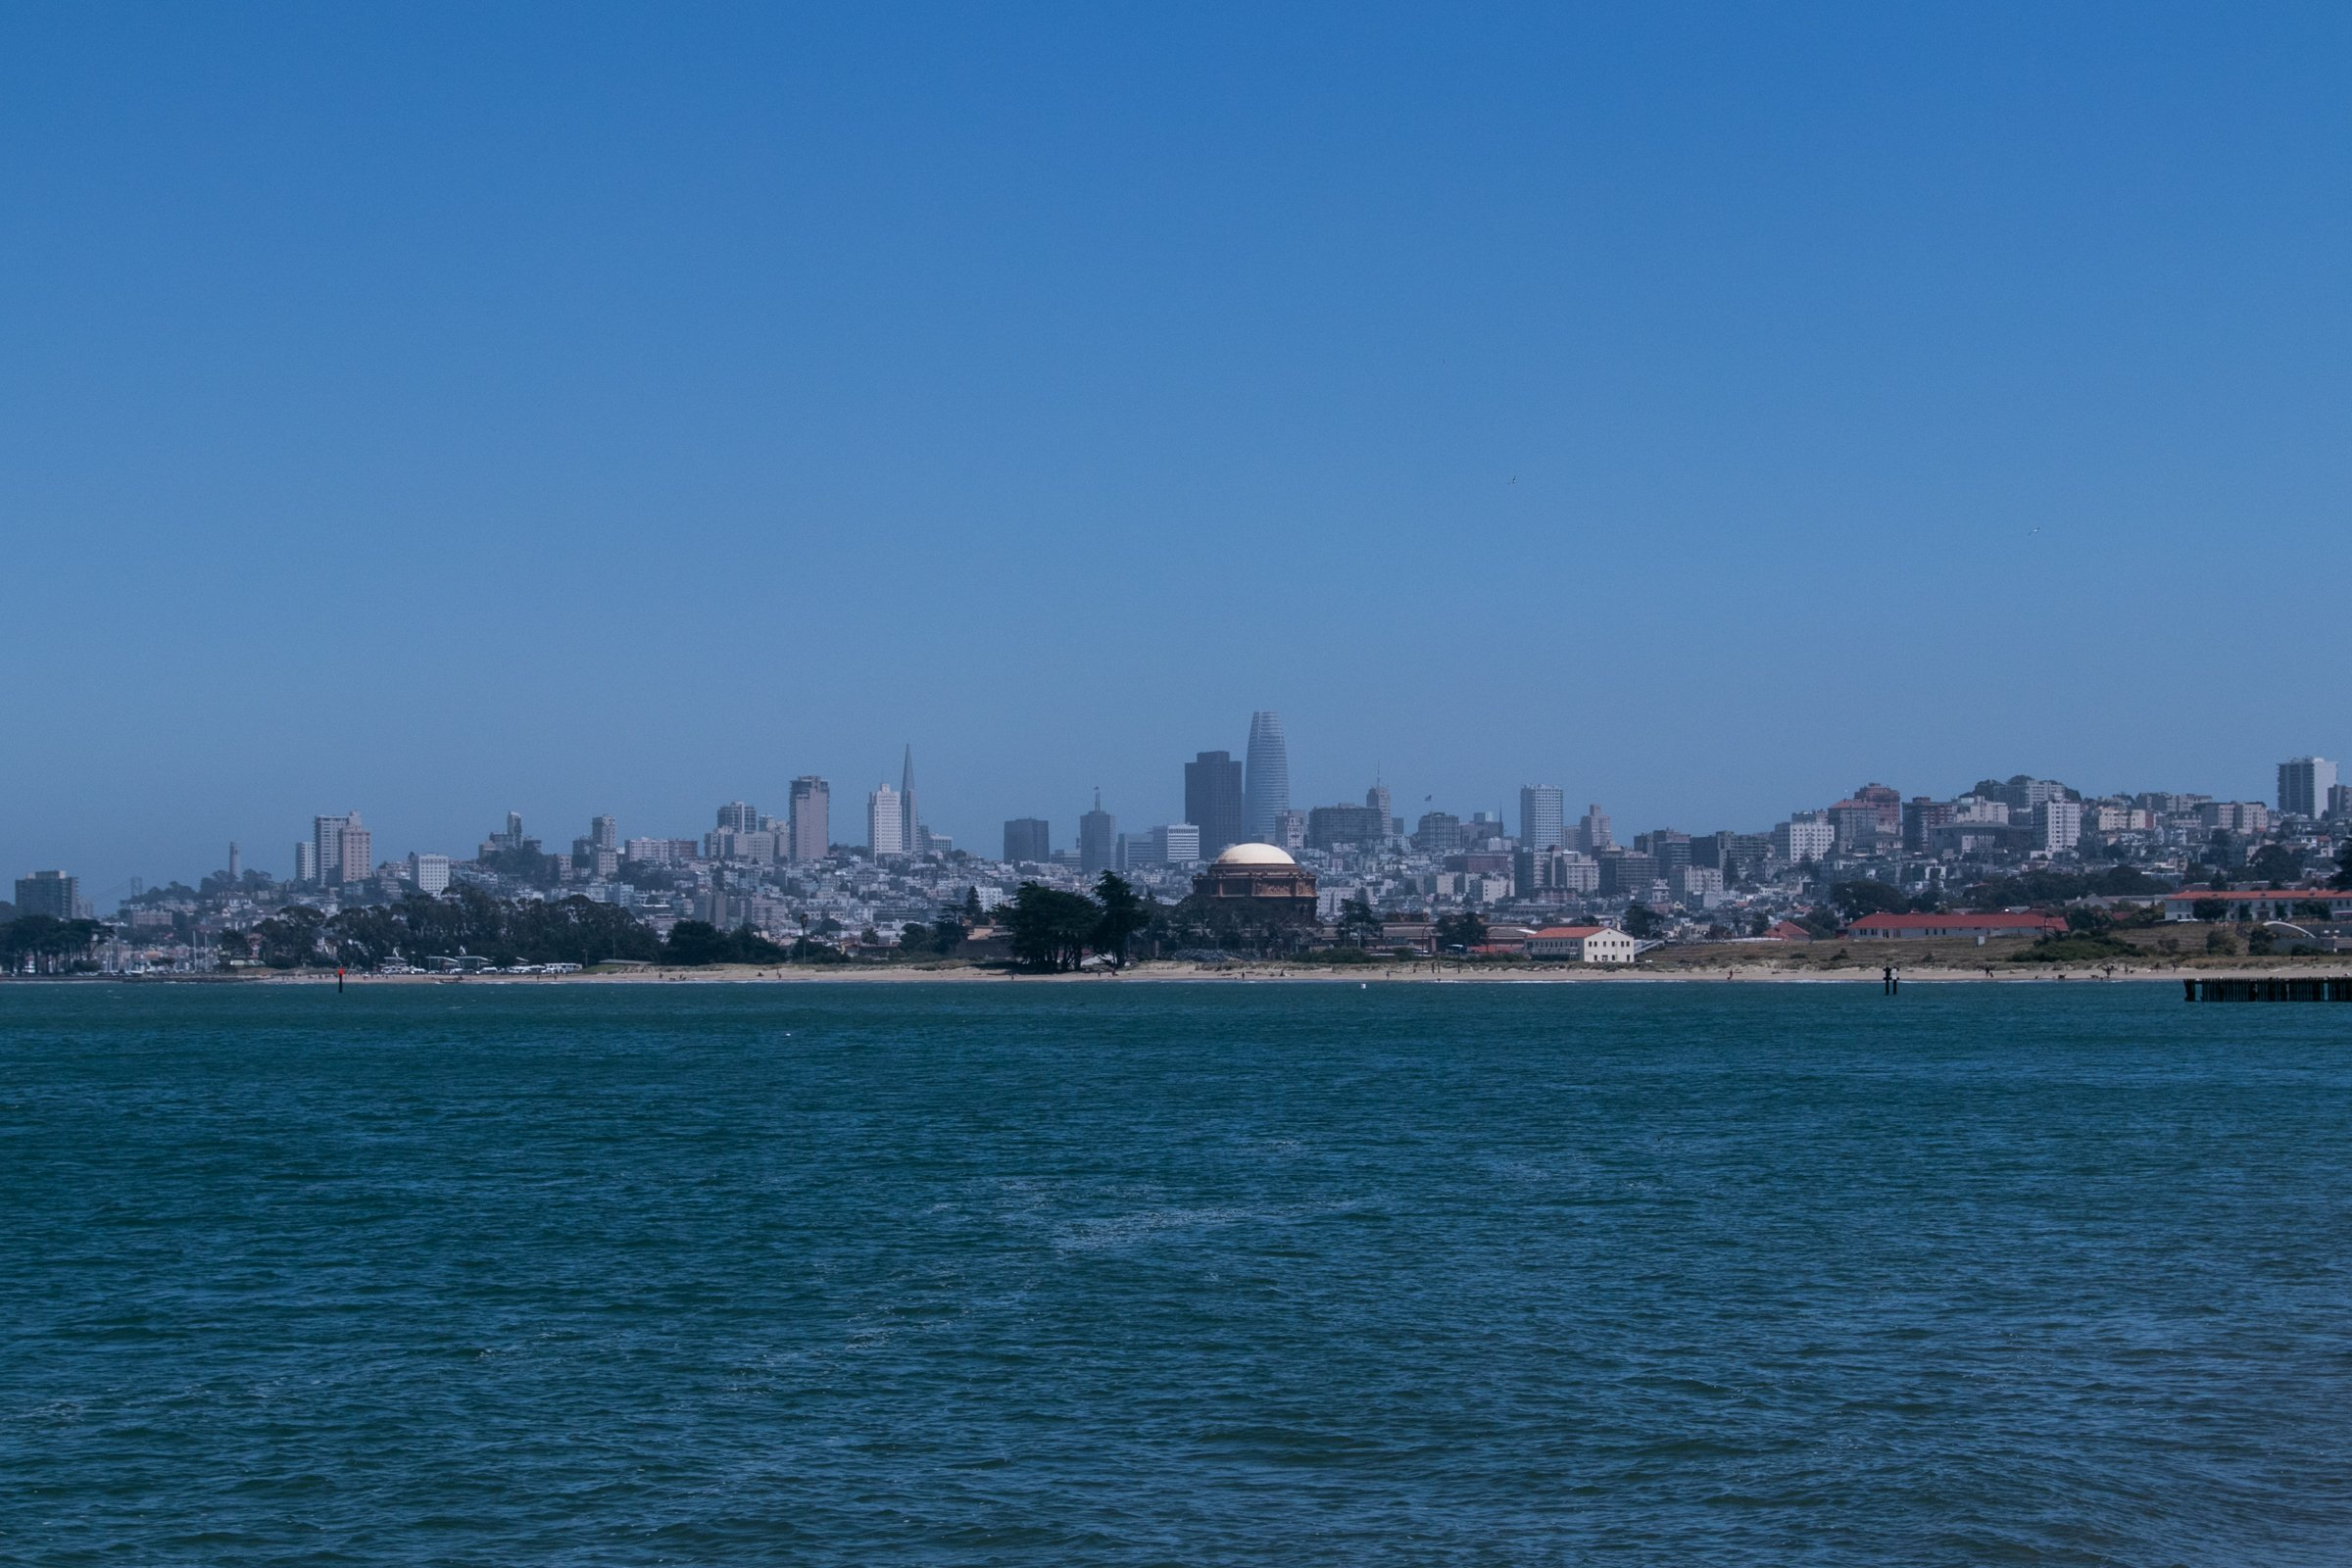 San Francisco City Skyline Beyond Water